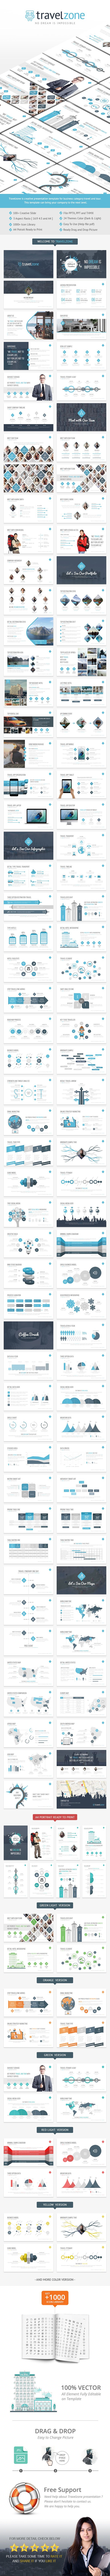 TRAVELZONE Powerpoint - No Dream is Impossible - Business PowerPoint Templates